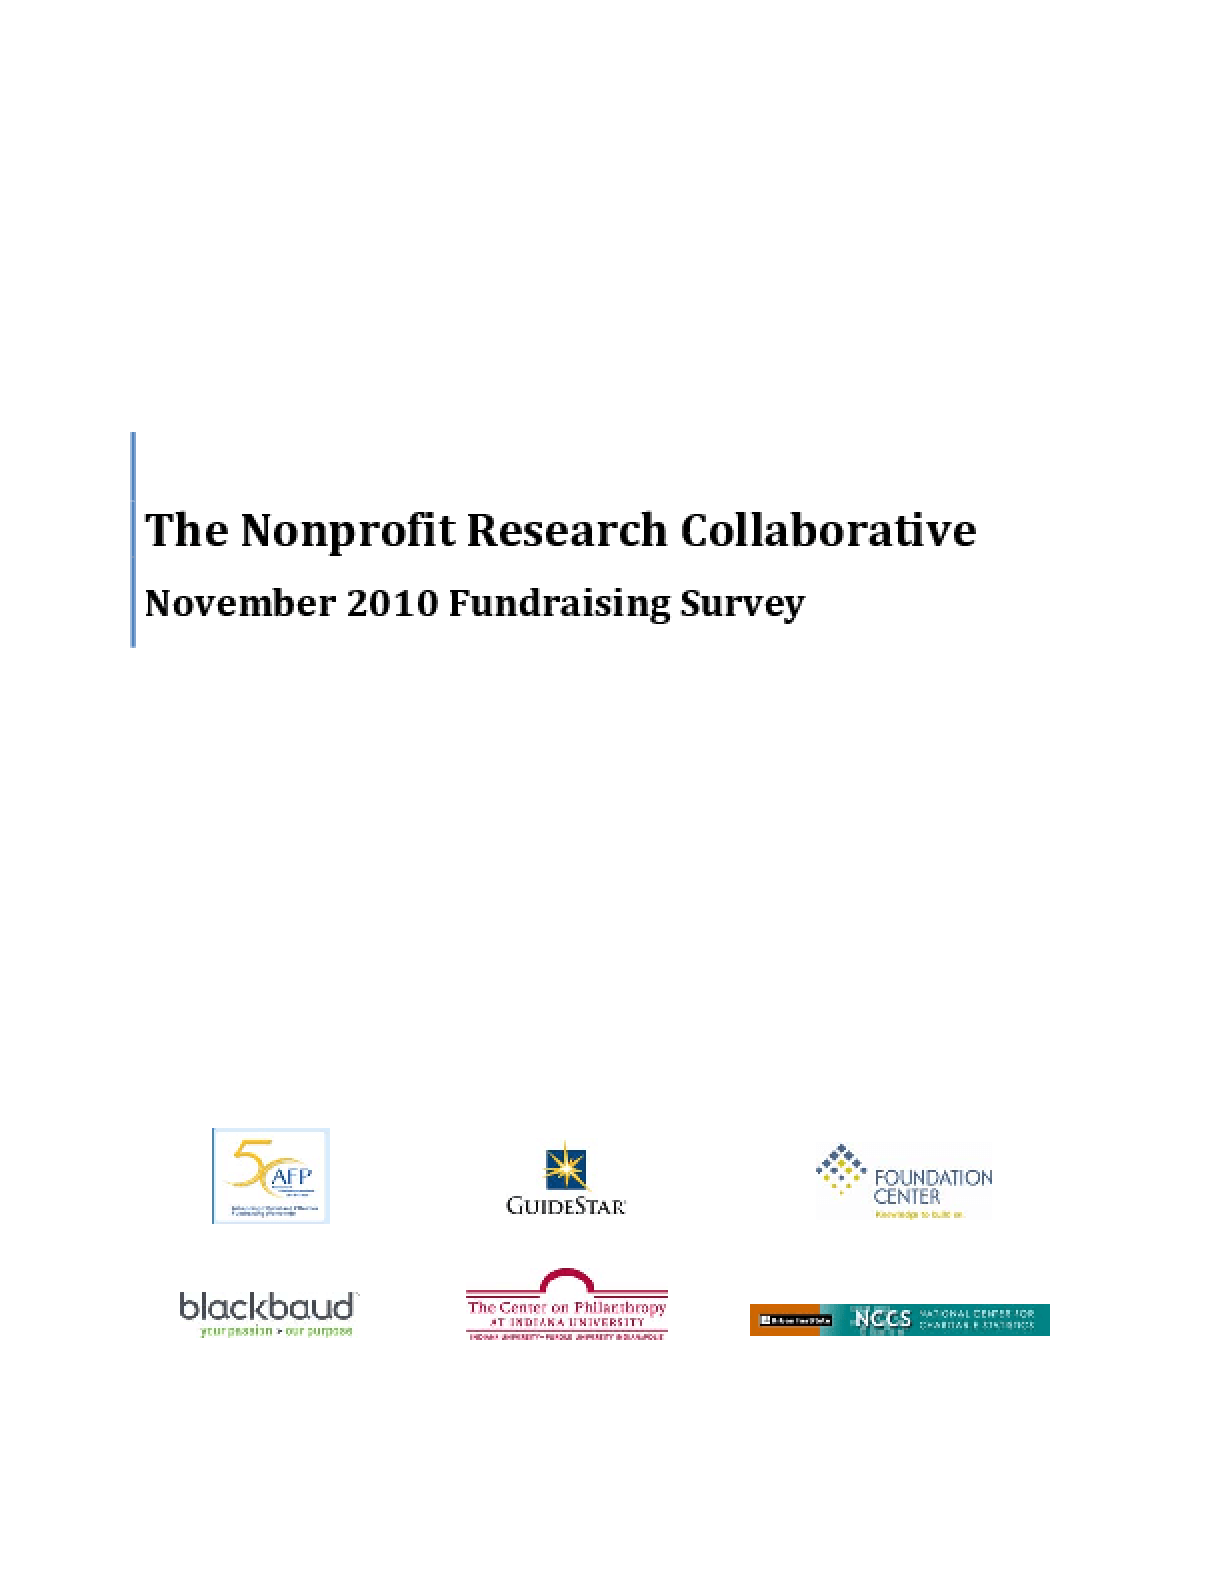 The Nonprofit Research Collaborative: November 2010 Fundraising Survey